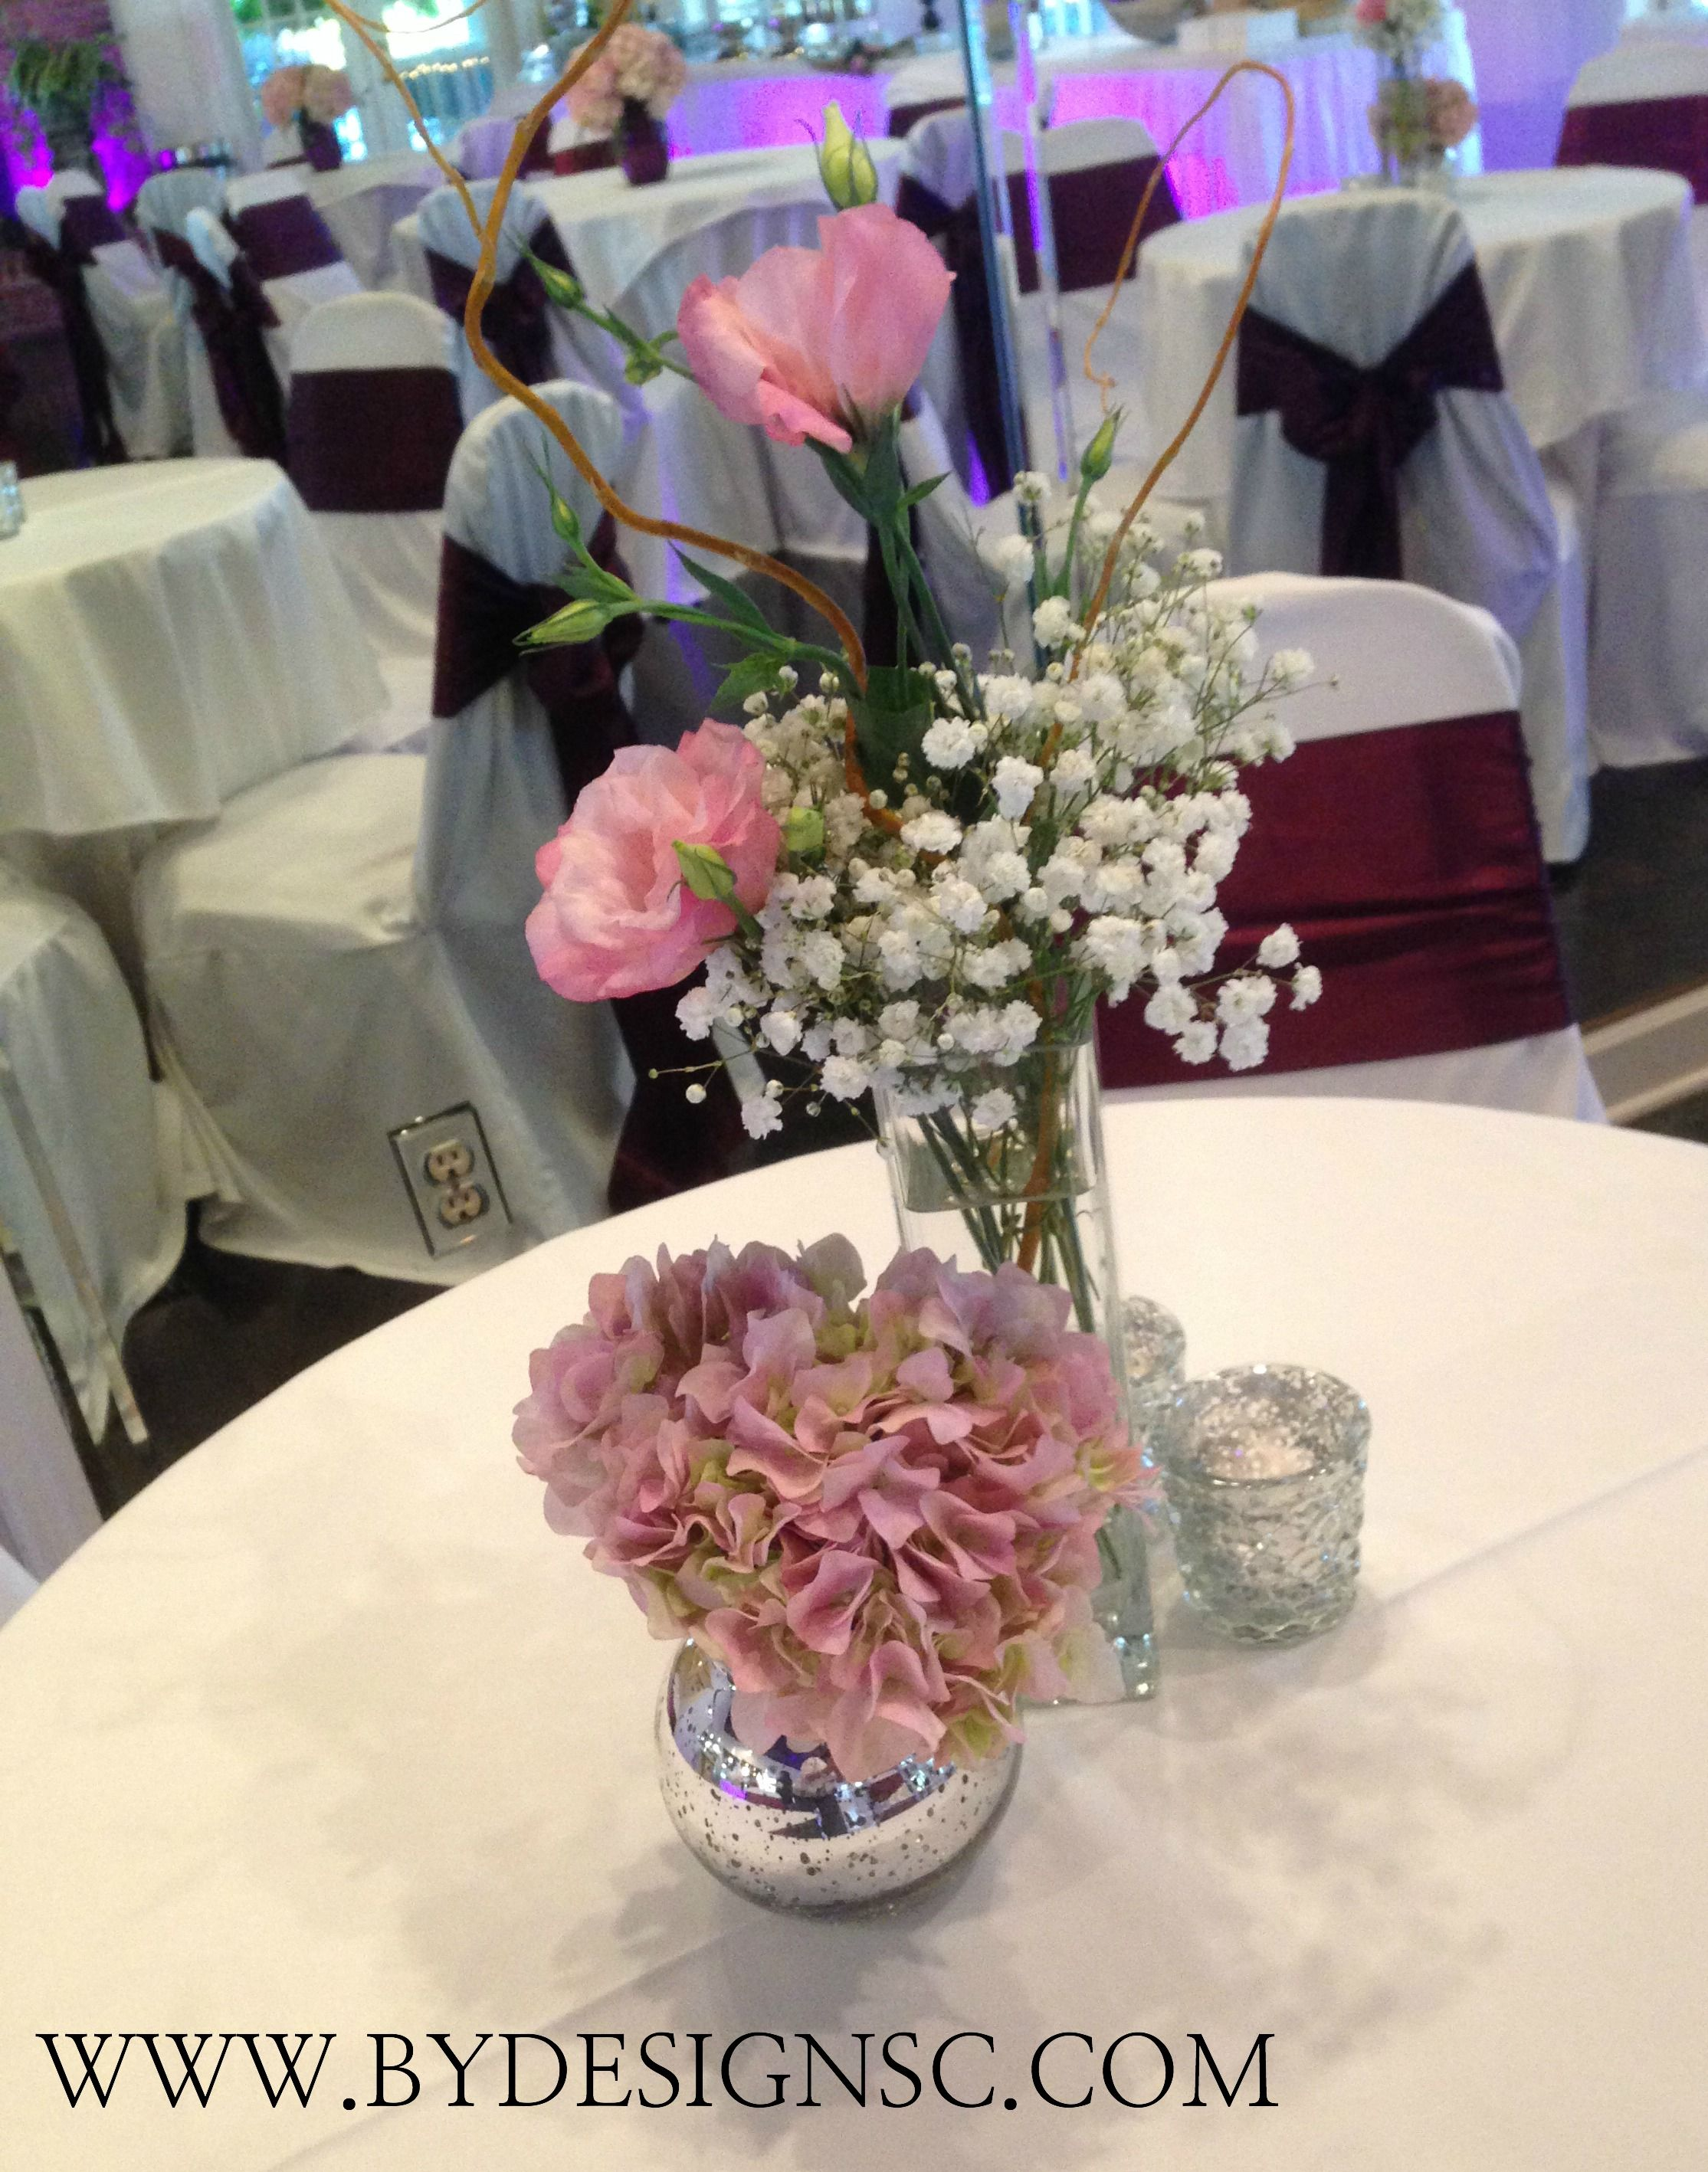 pink and purple wedding reception centerpieces wedding reception rh pinterest com Wedding Reception Centerpiece Ideas Centerpieces for Wedding Receptions